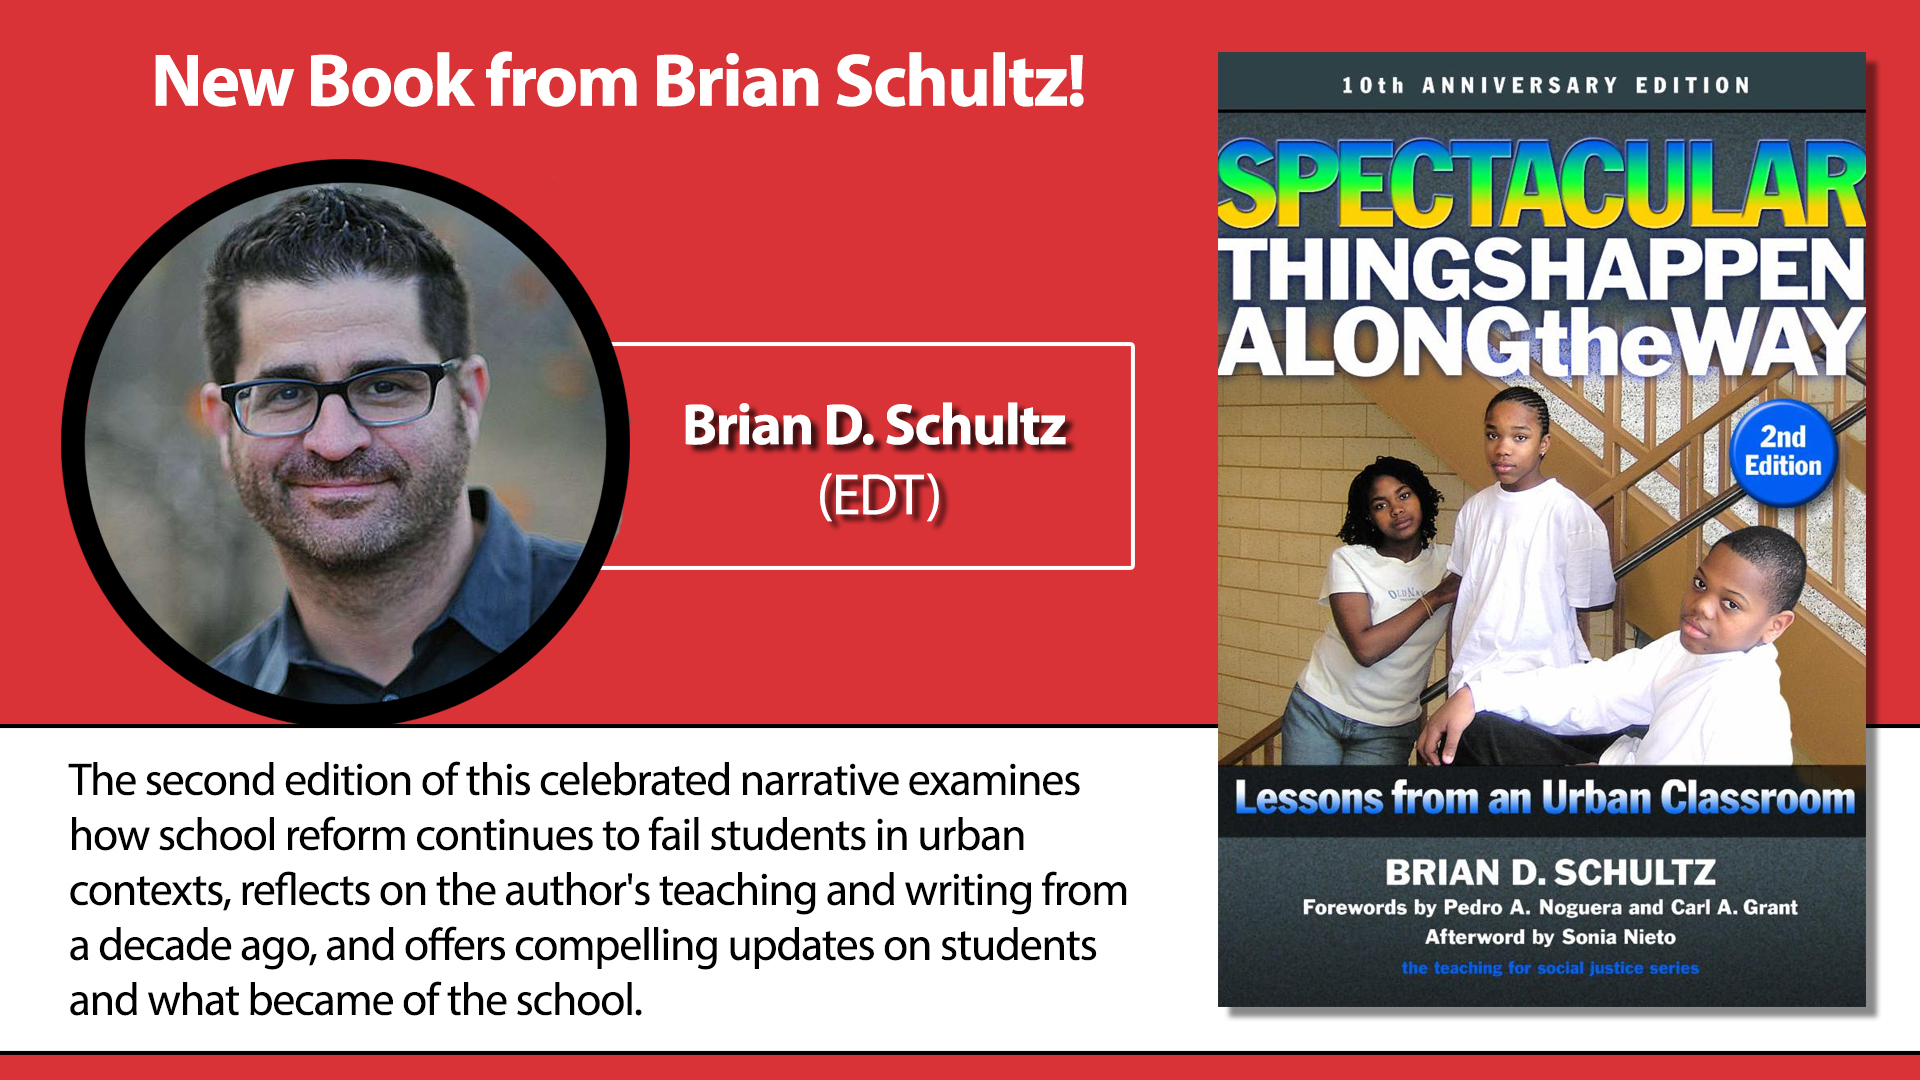 brian-schultz-new-book.jpg